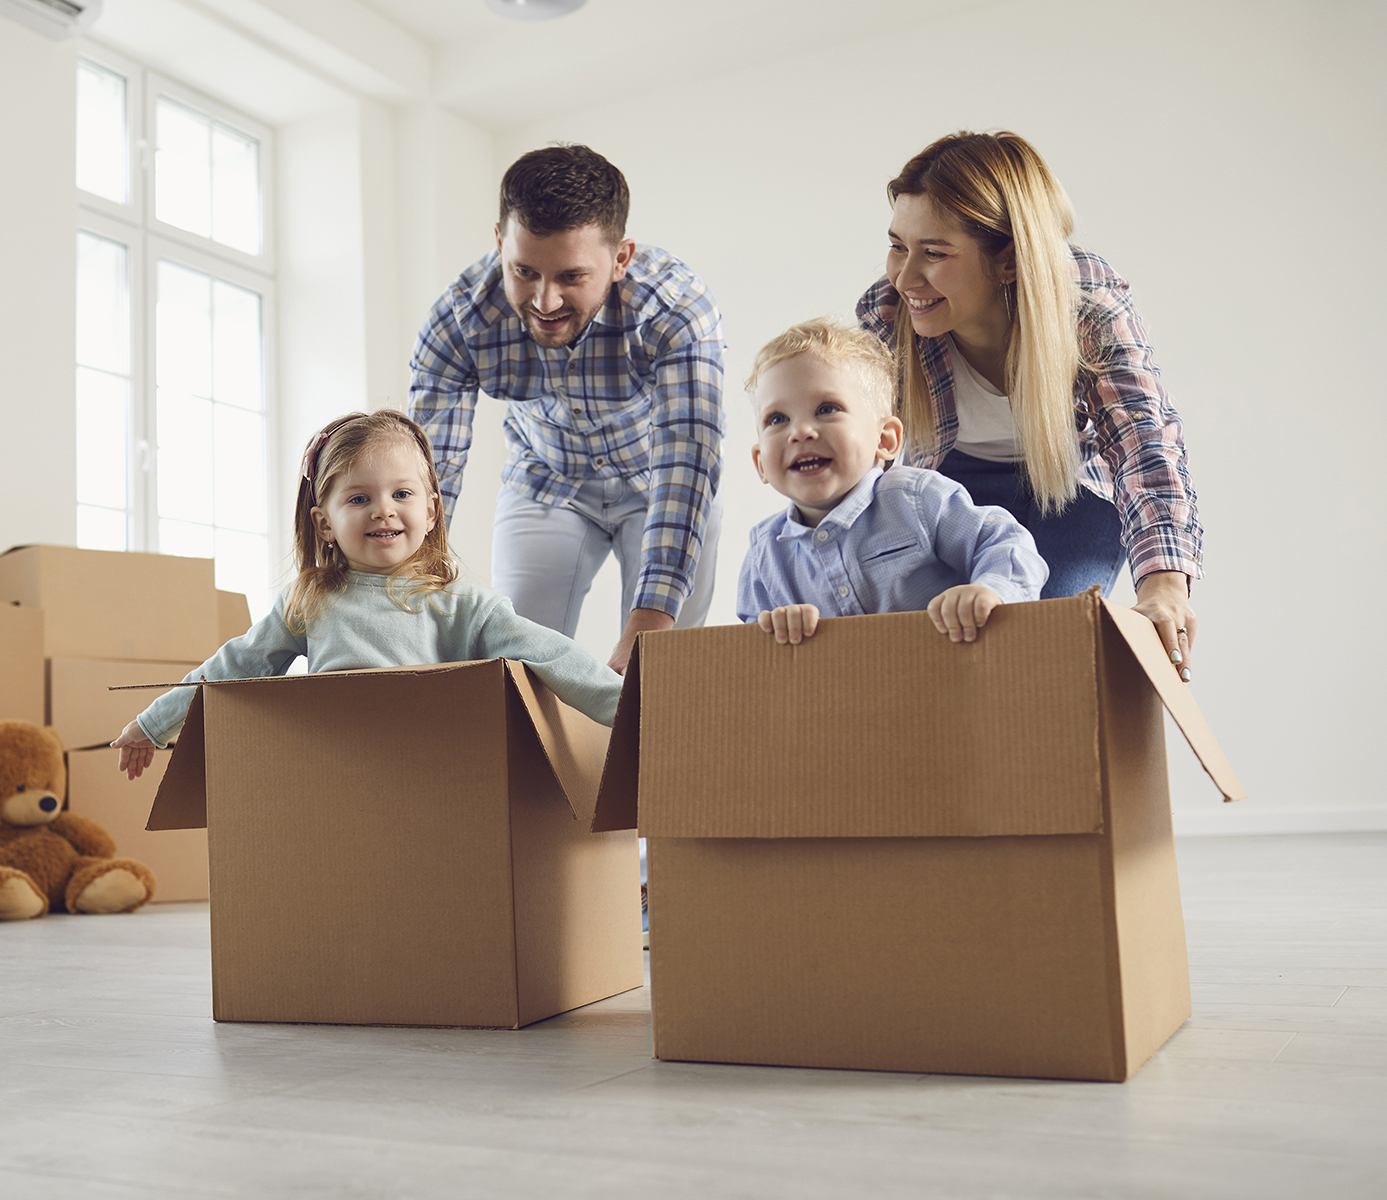 Image of 2 small children being pushed in cardboard boxes by parents